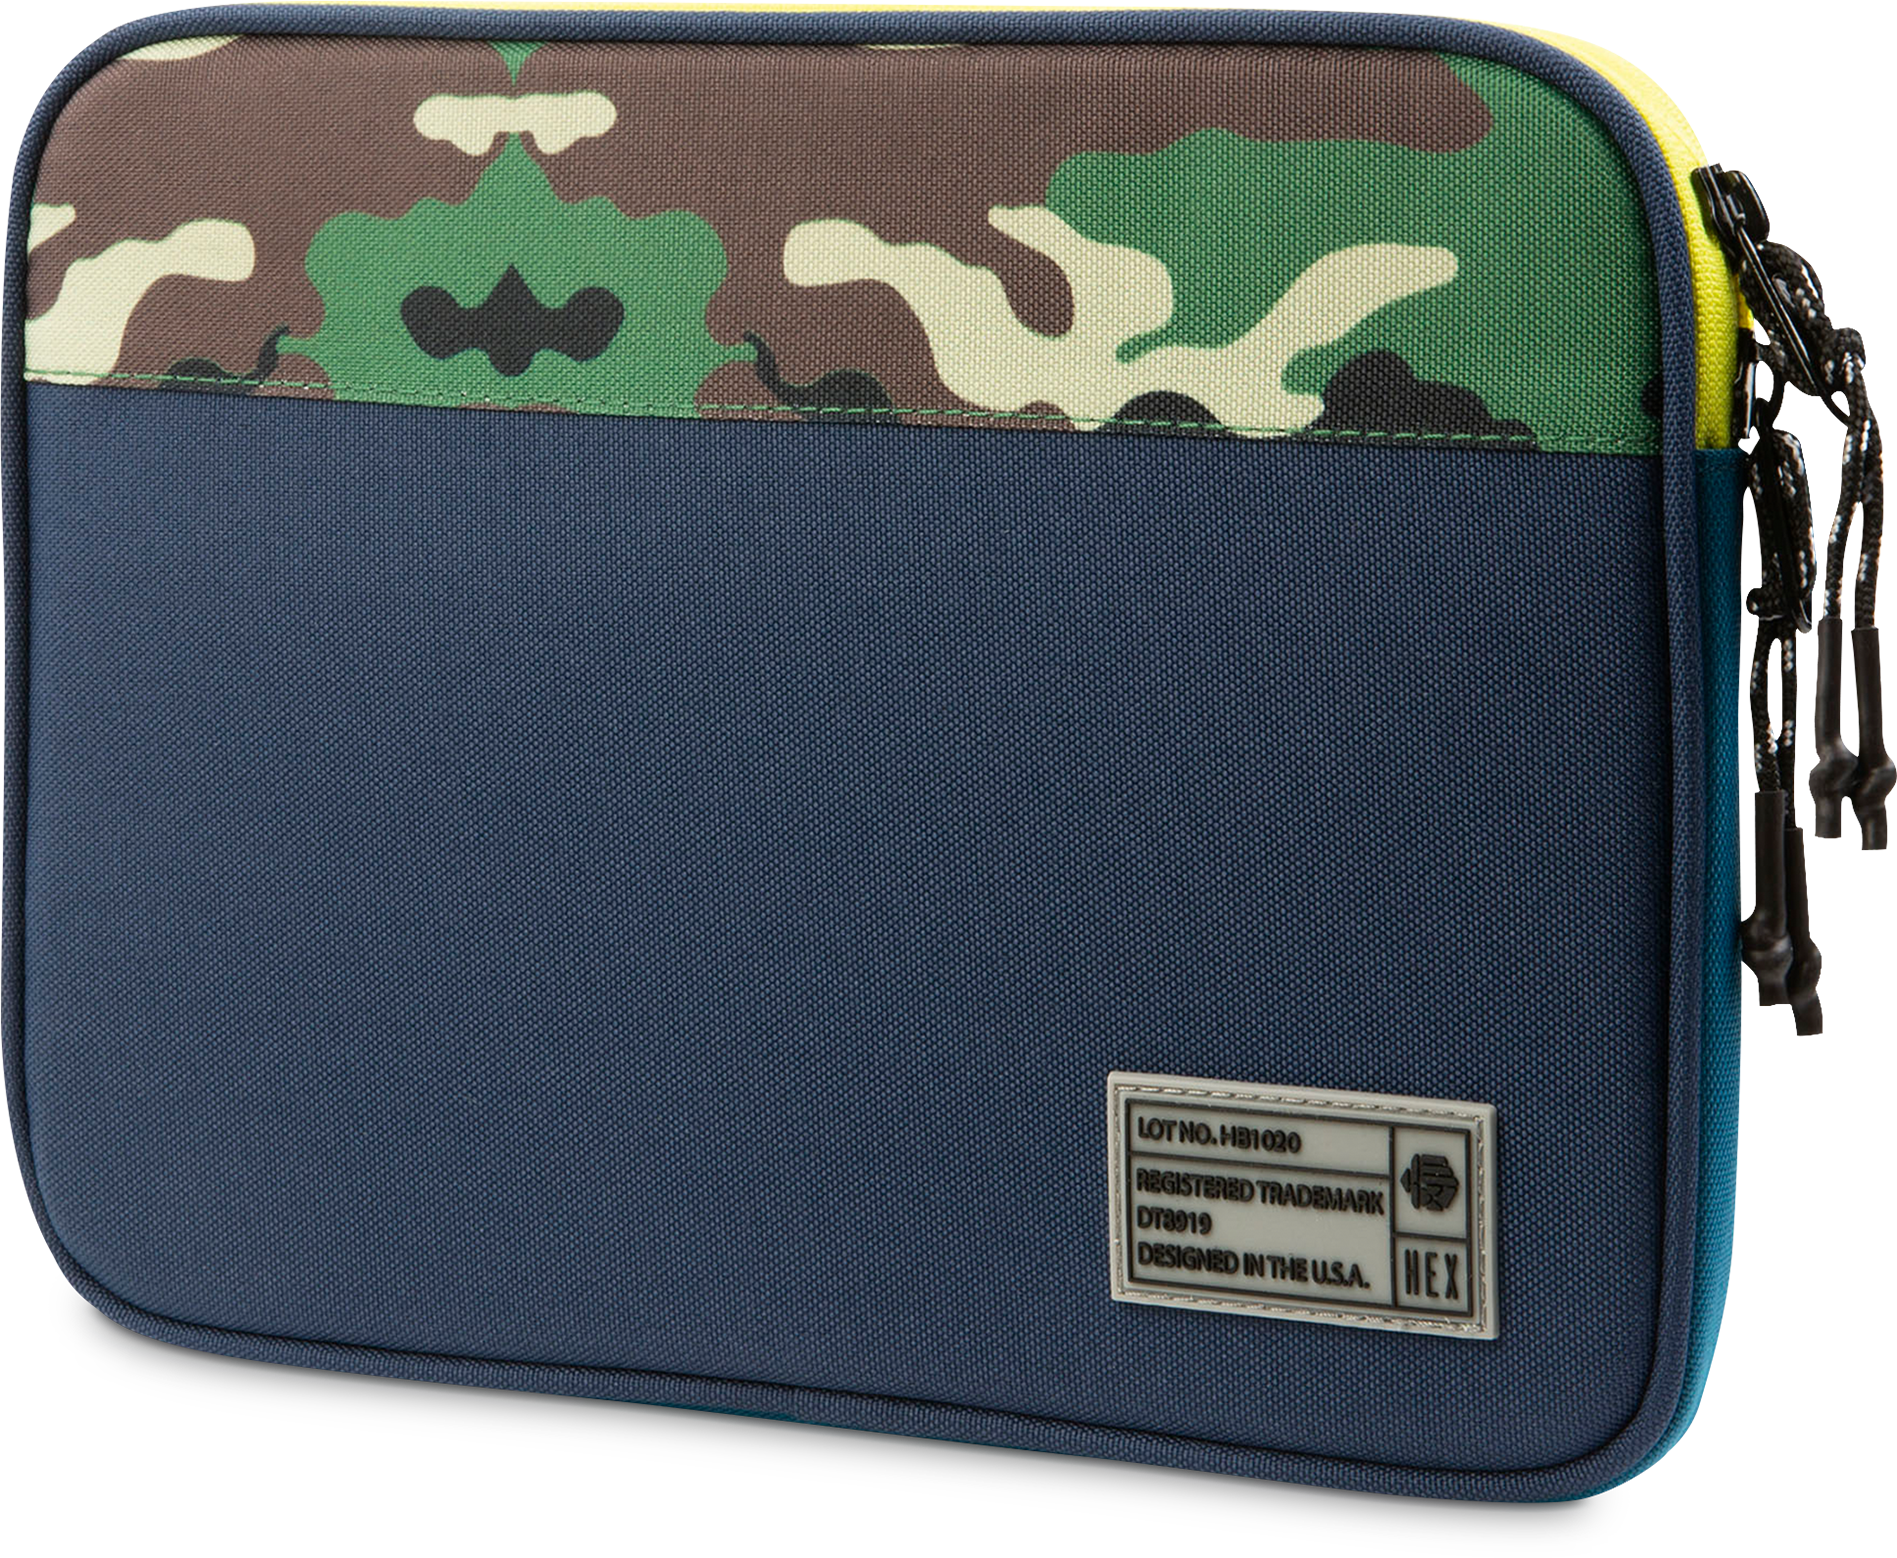 RE3cle8?ver=41c7 - HEX Surface Go Sleeve